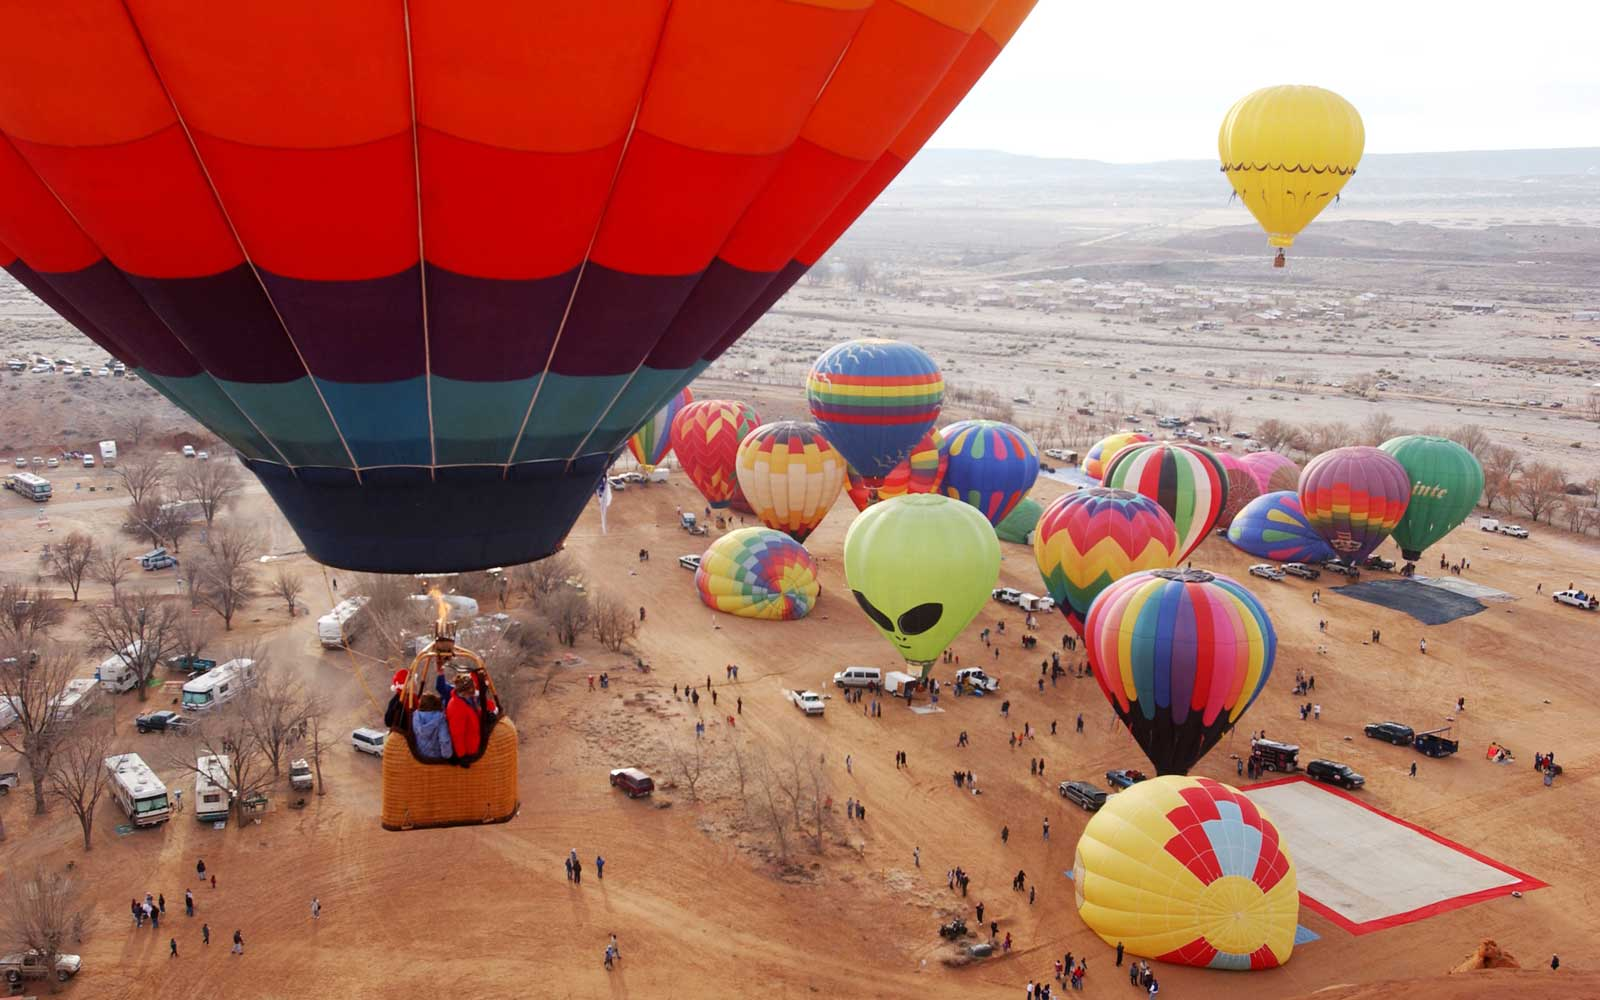 New Mexico's Sky Will Be Filled With Colorful Hot Air Balloons This Weekend — Here's What It's Like to Take a Ride